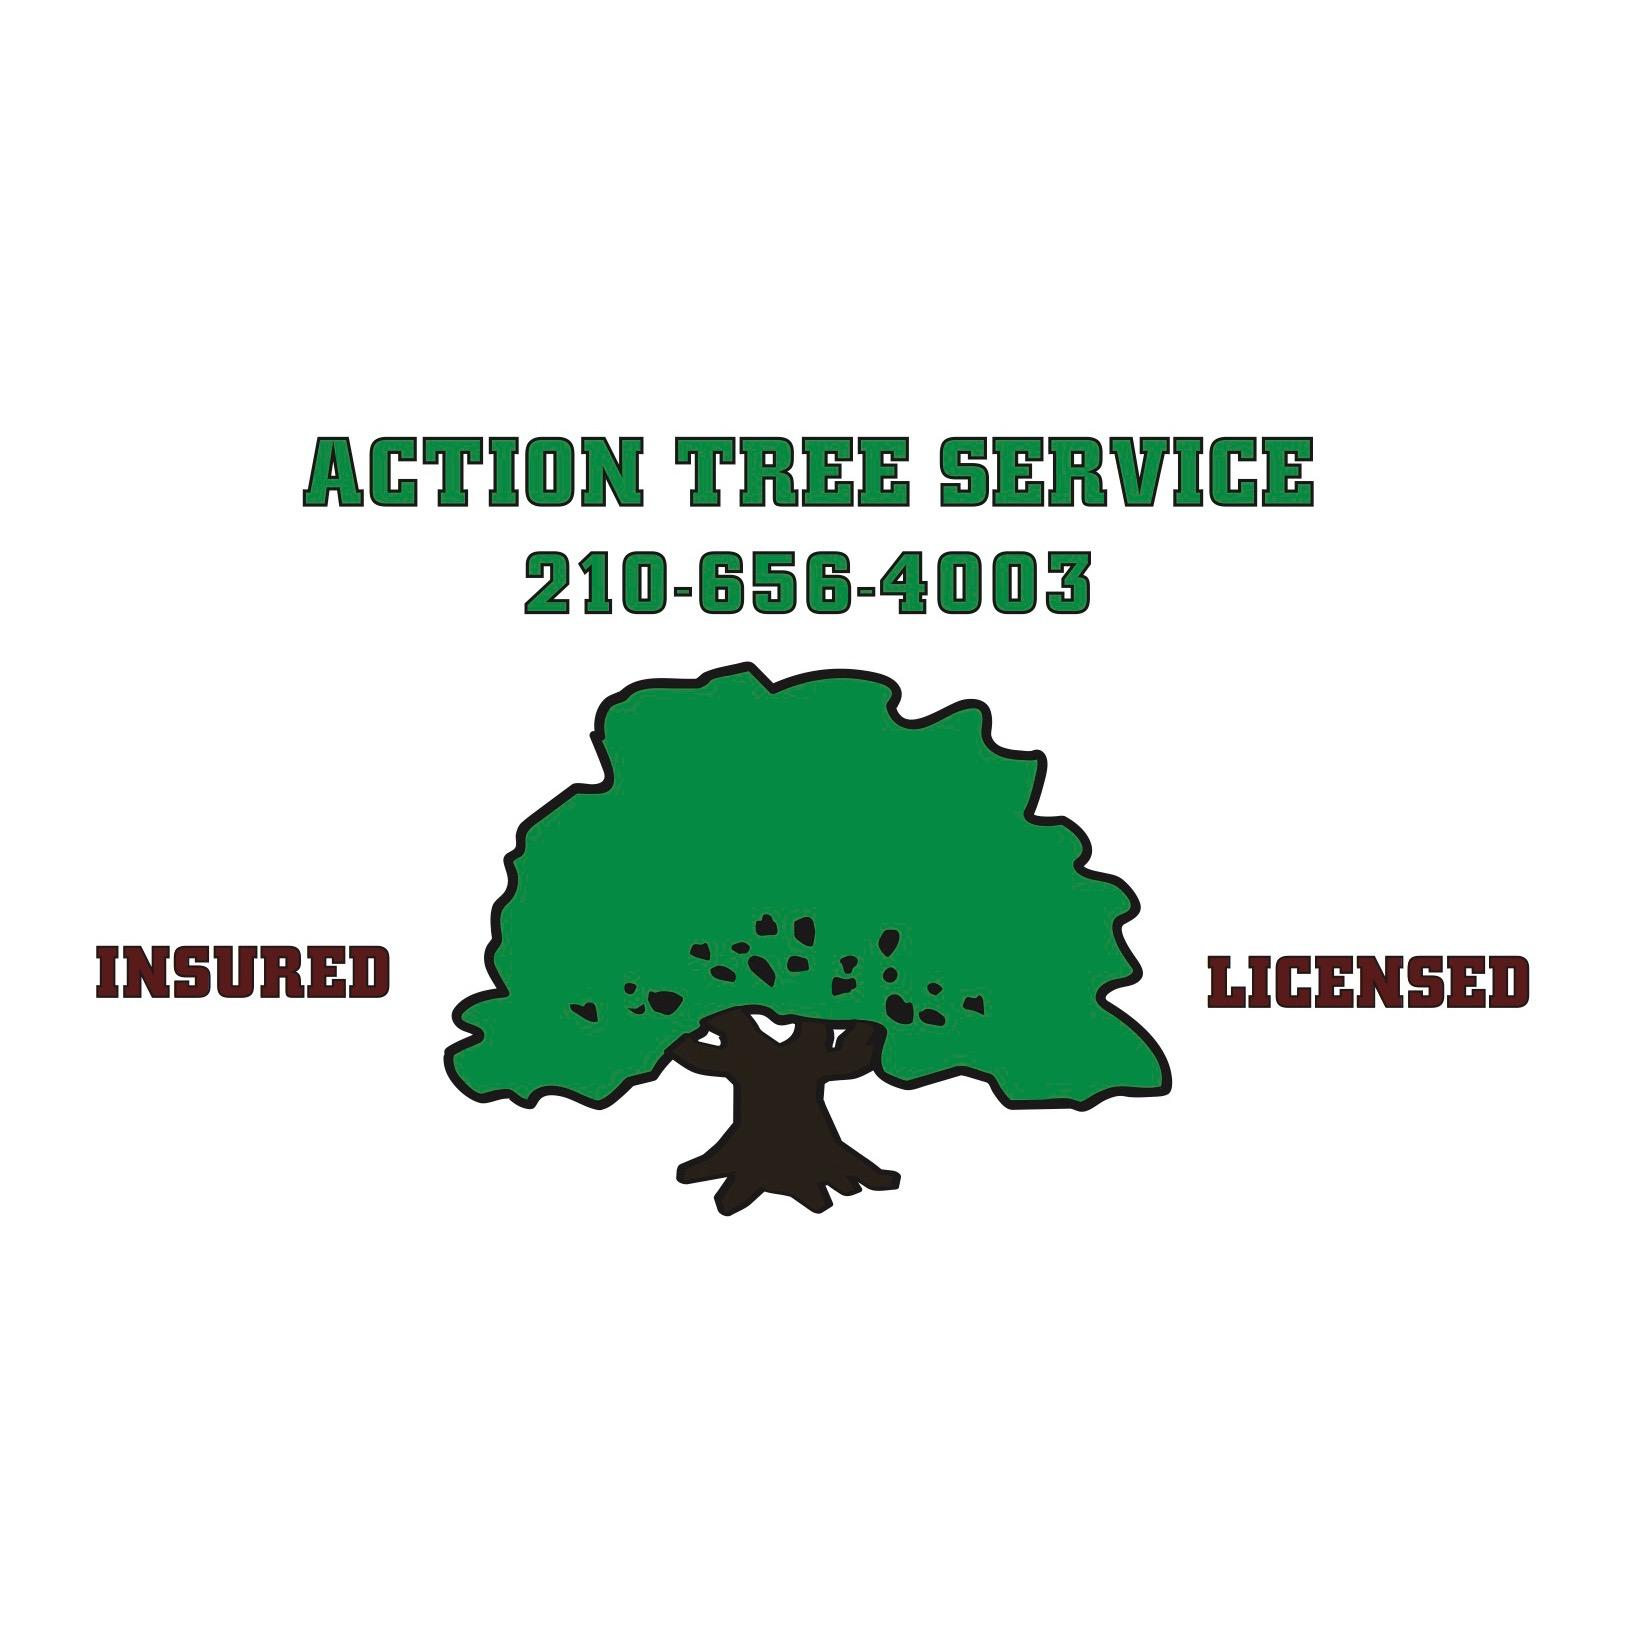 Action Tree Service